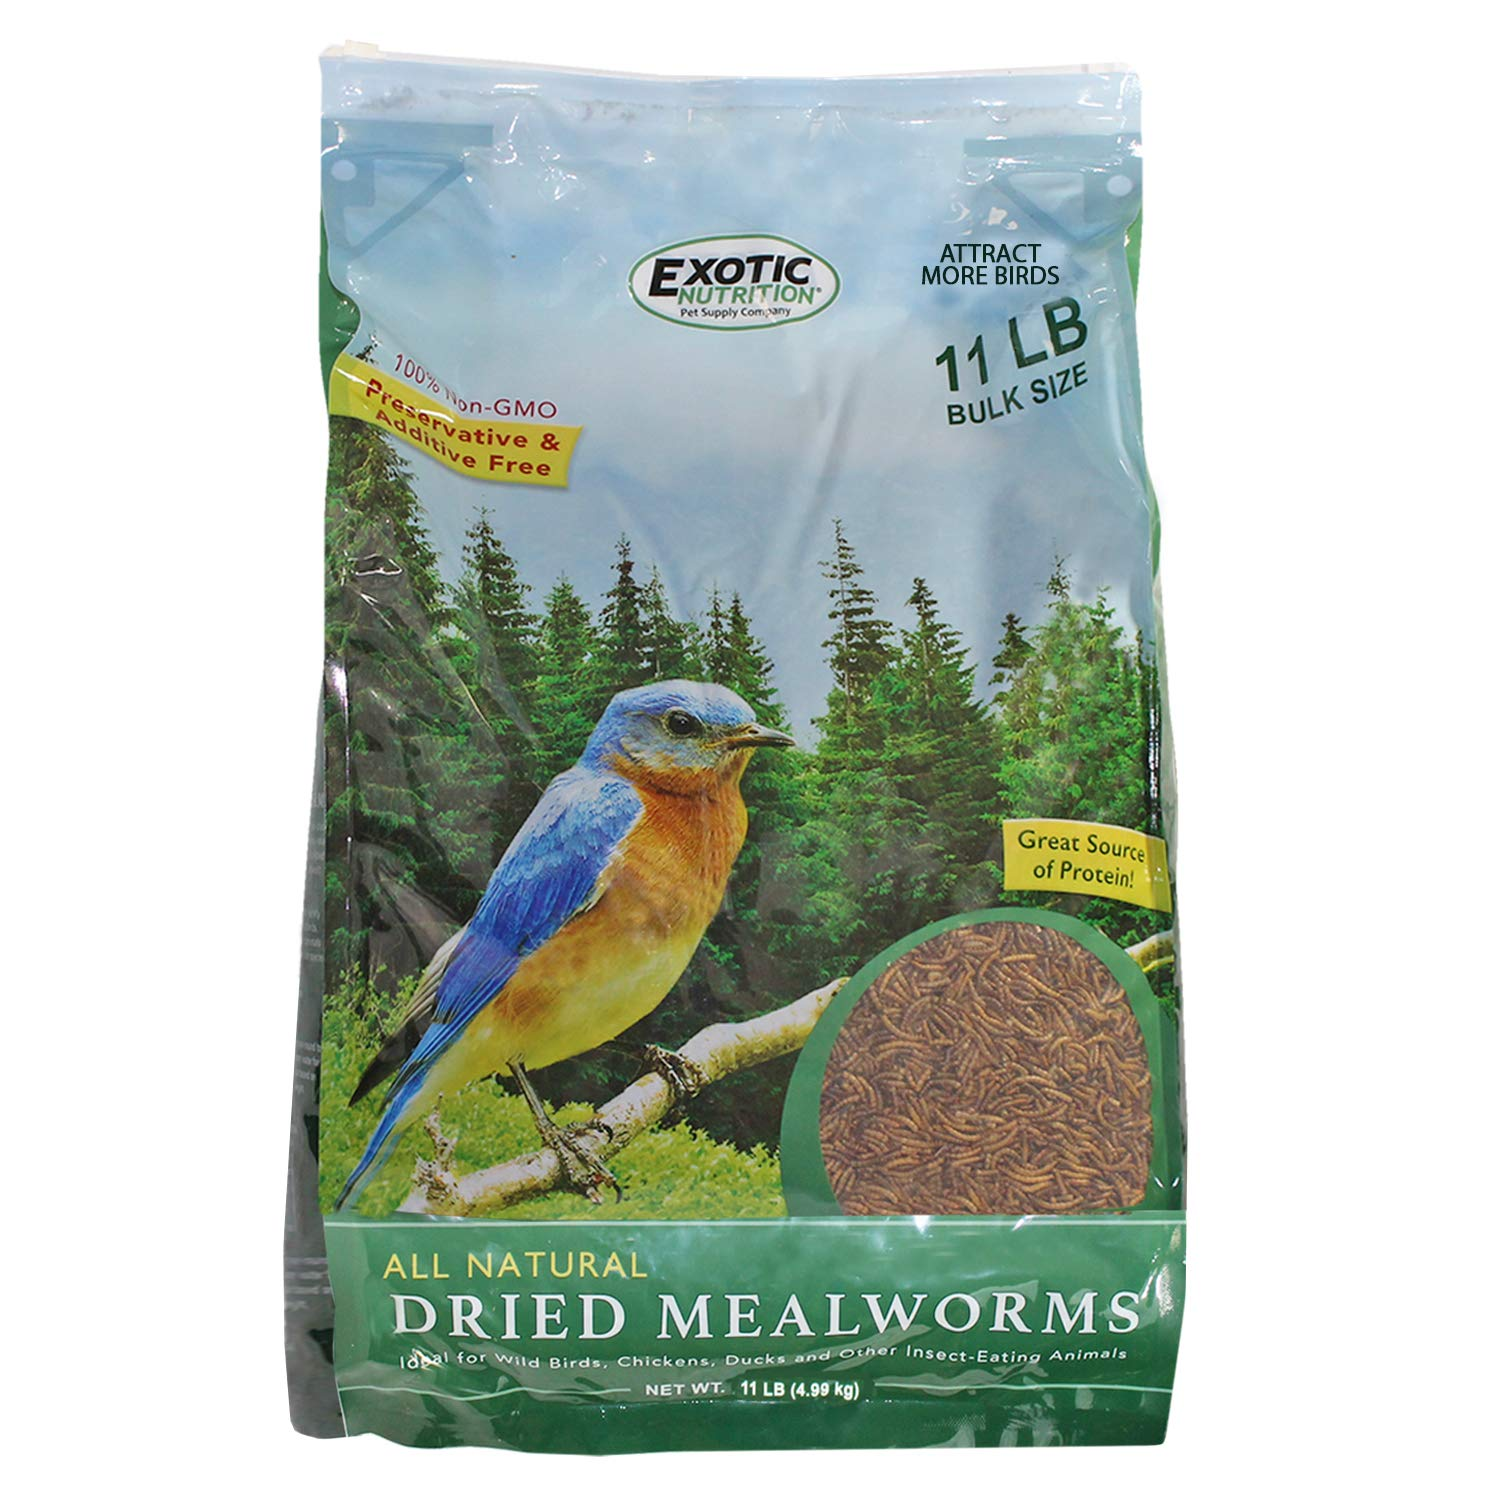 Bulk Dried Mealworms (11 lb.) Approx. 175,000 - High Protein Insect Treat for Chickens, Wild Birds, Hedgehogs, Bluebirds, Reptiles, Sugar Gliders, Opossums, Skunks, Lizards, Bearded Dragon, Fish by Exotic Nutrition